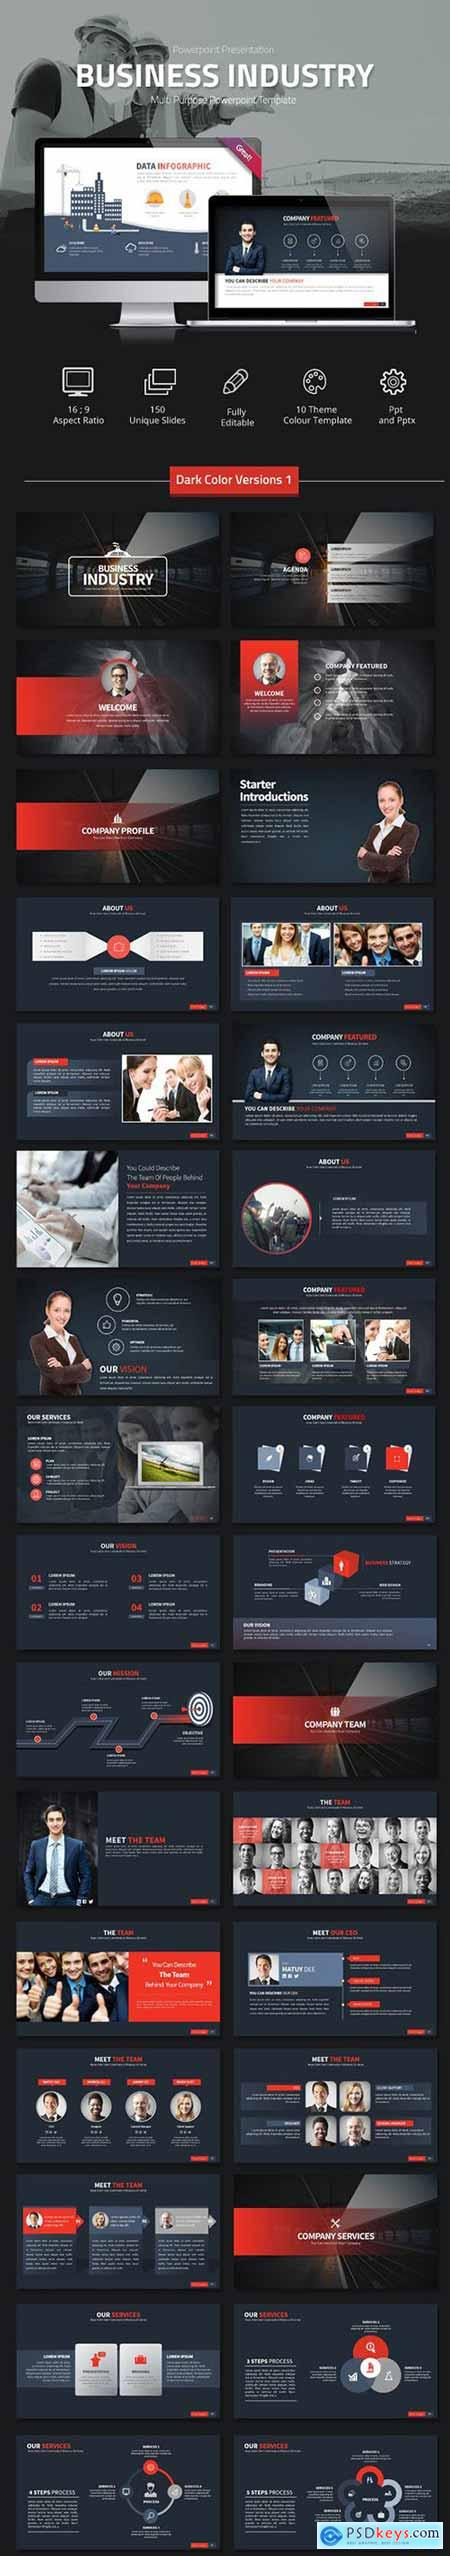 Business Industry Powerpoint Presentation 11333677